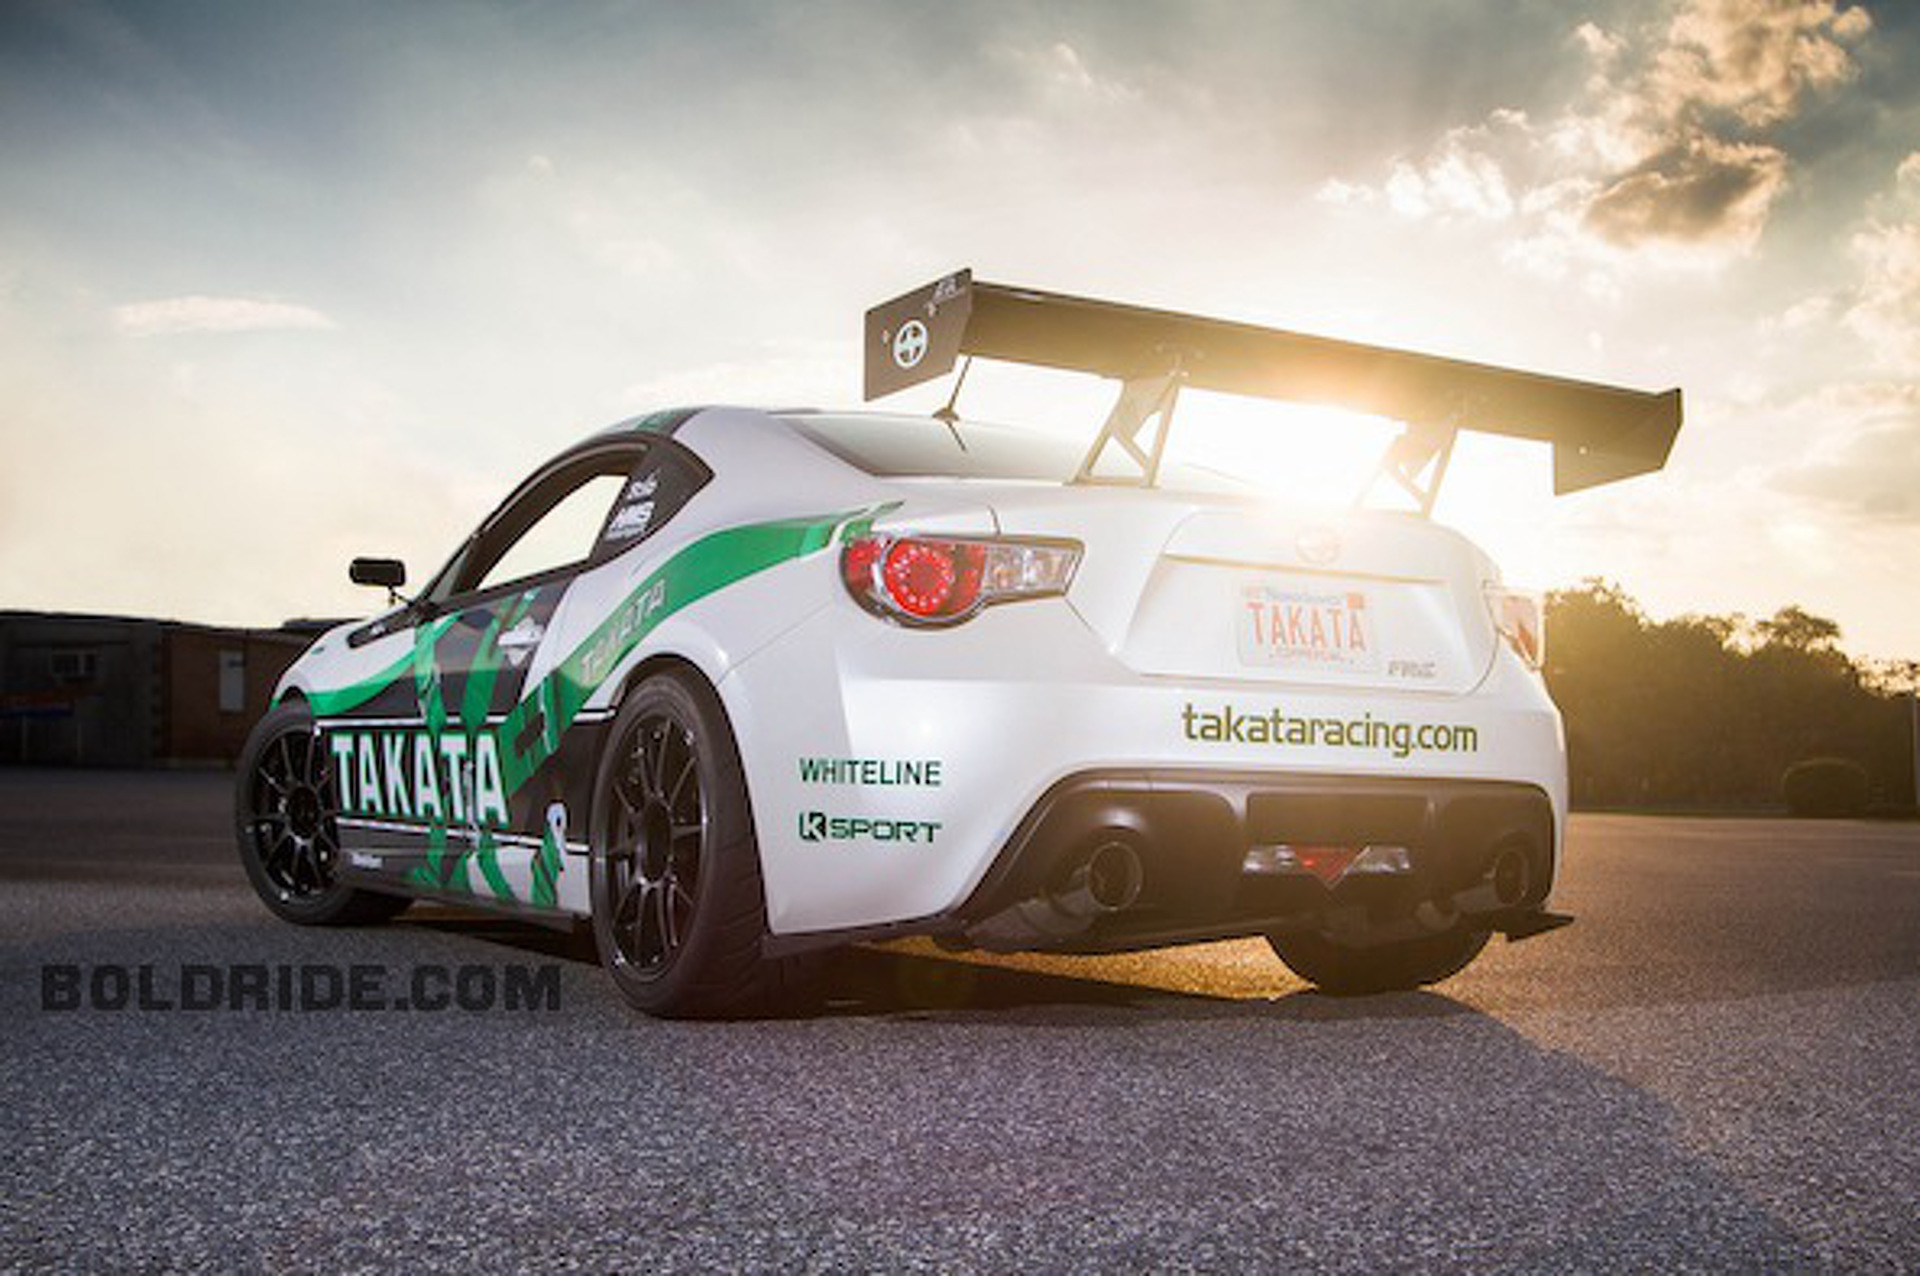 Wheels Wallpaper: Takata Racing Scion FR-S